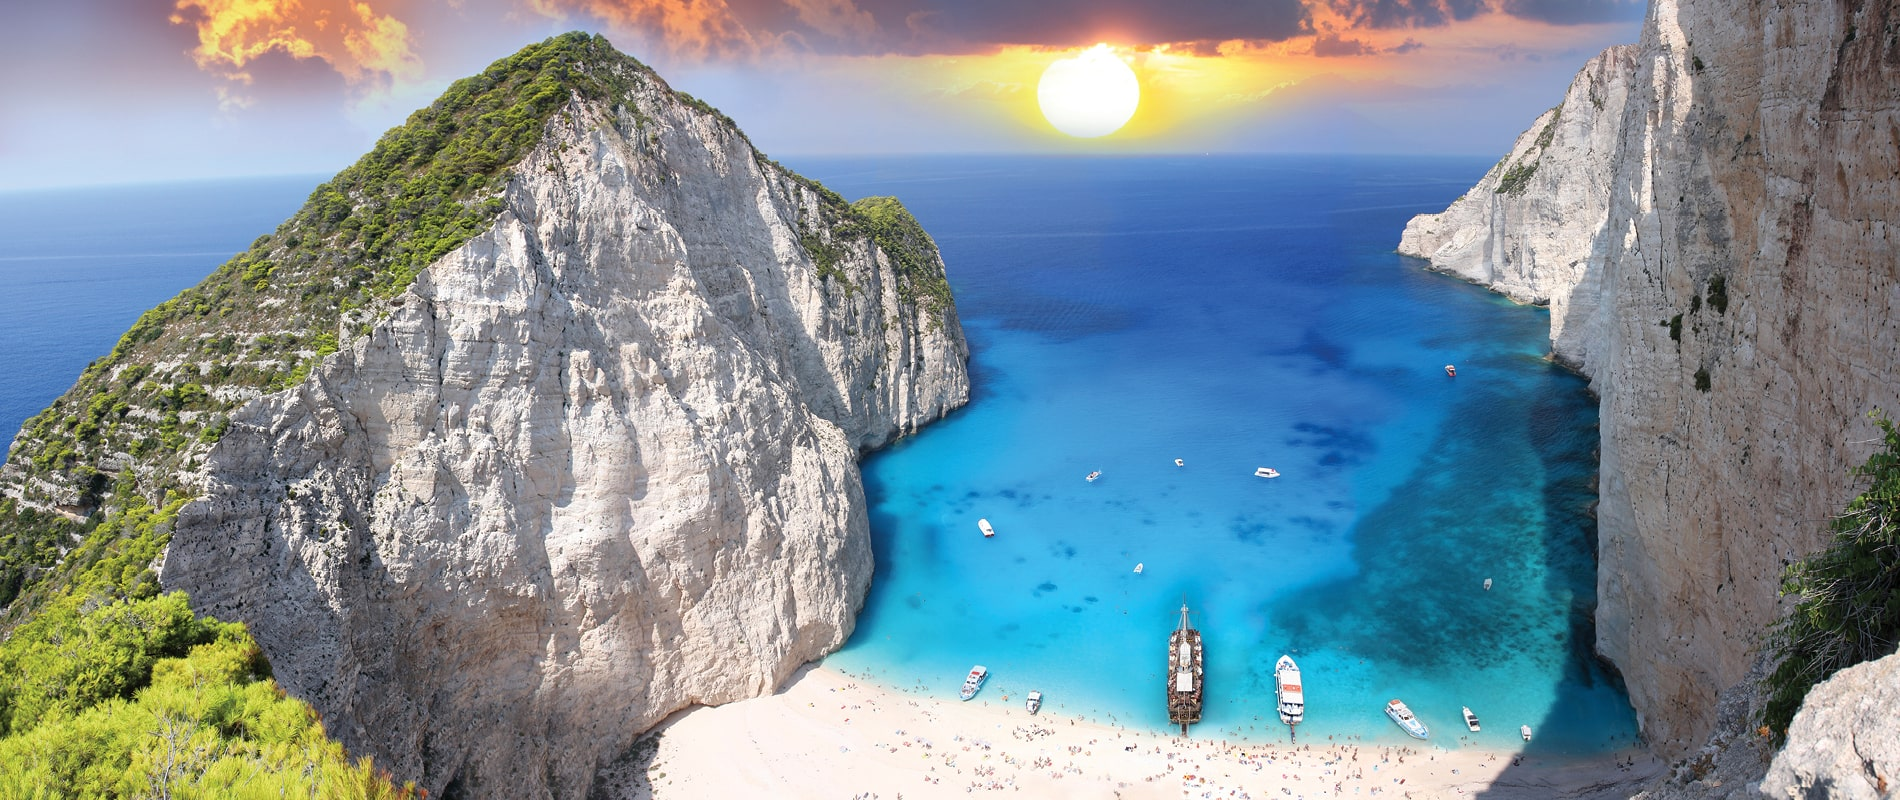 Ionian Islands region of Greece